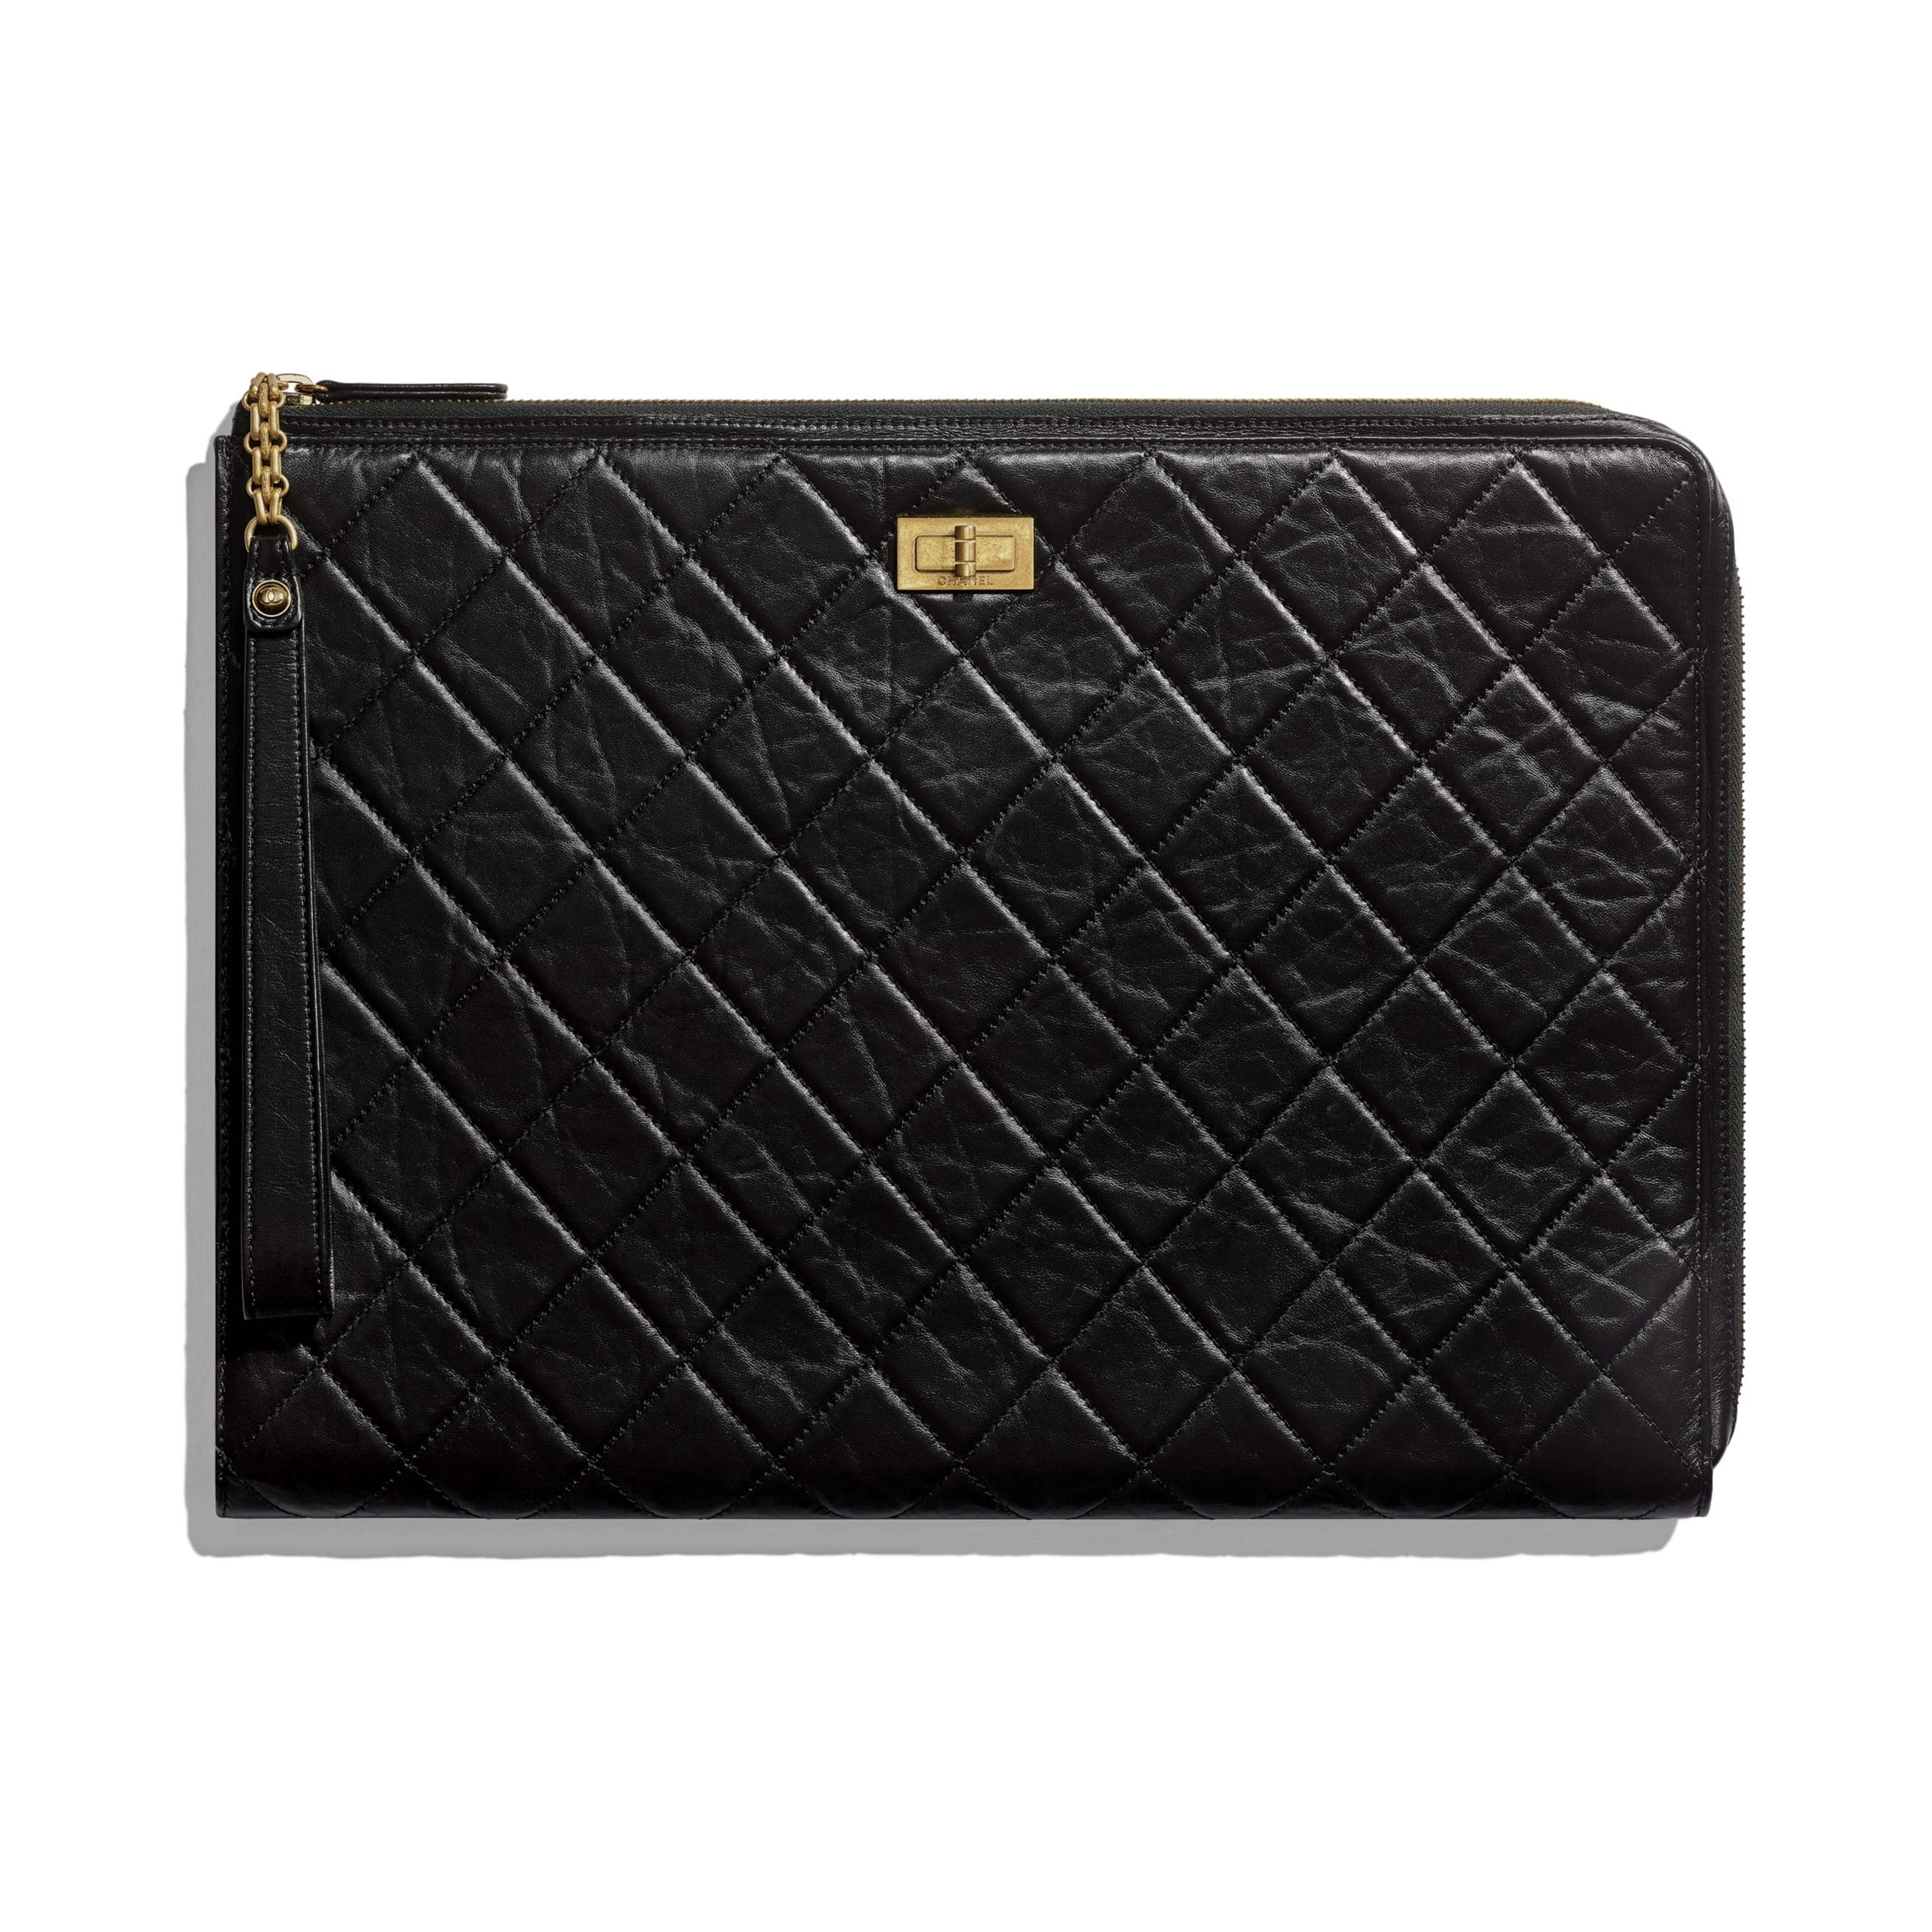 2.55 Pouch - Black - Aged Calfskin & Gold-Tone Metal - CHANEL - Default view - see standard sized version